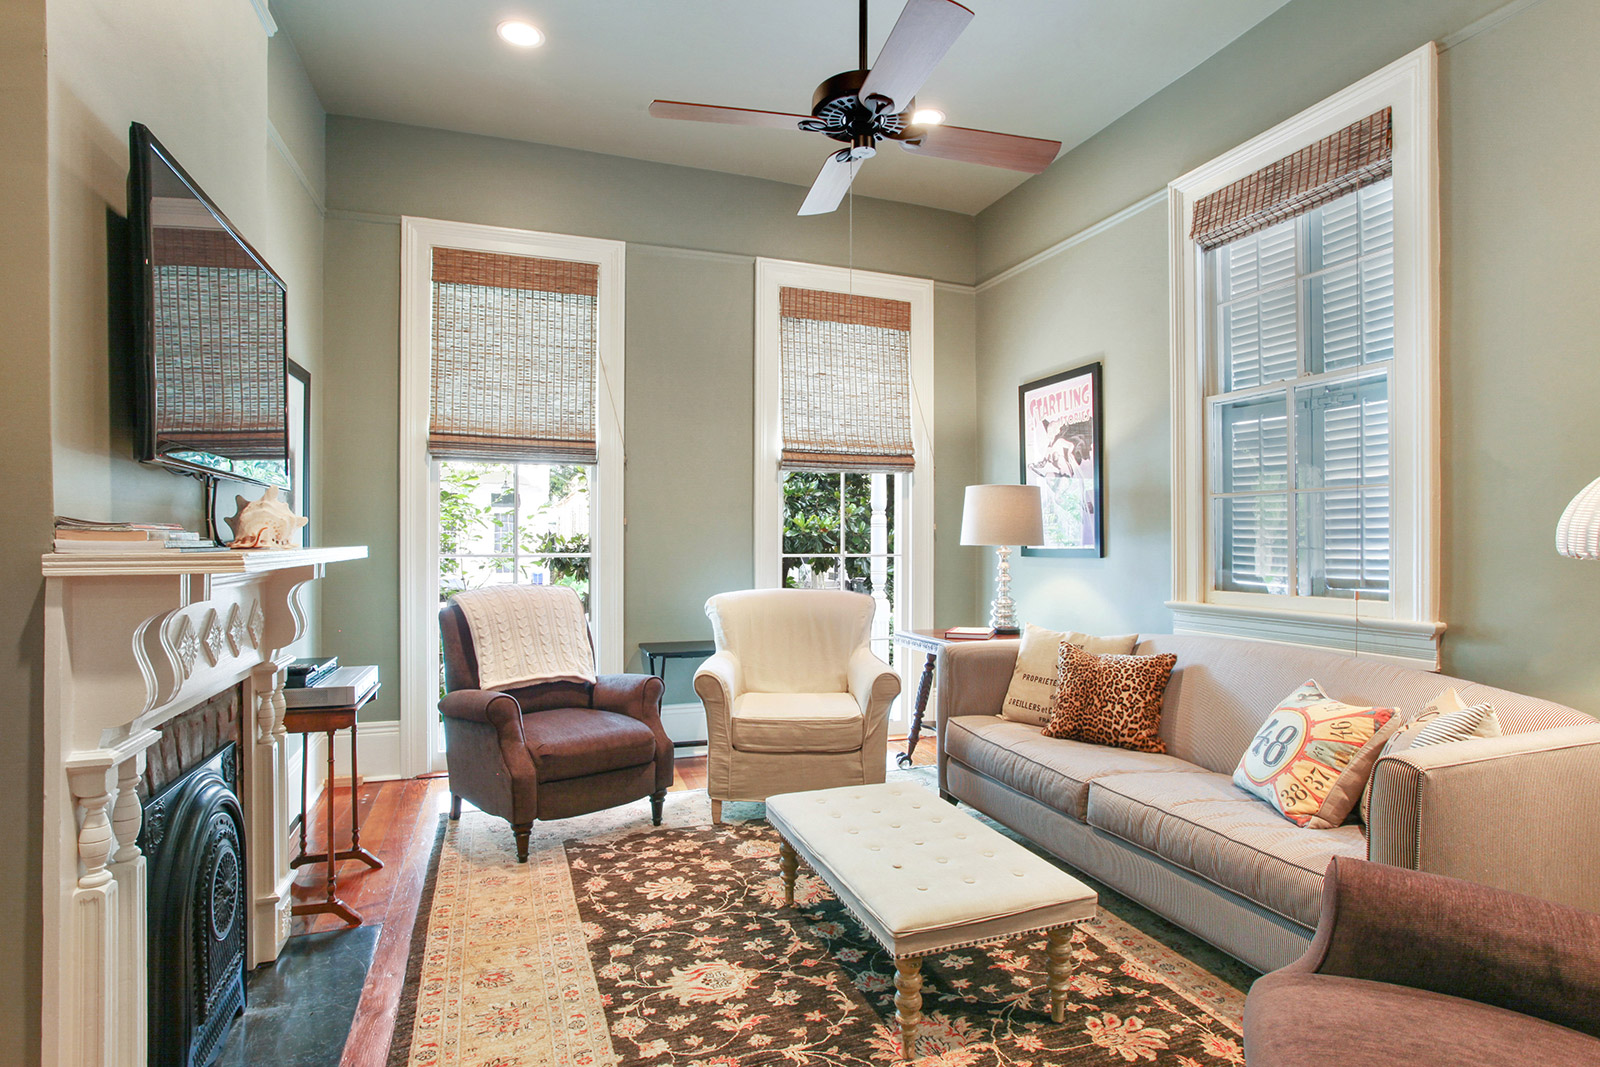 Uptown, House, 3 beds, 2.0 baths, $7500 per month New Orleans Rental - devie image_5